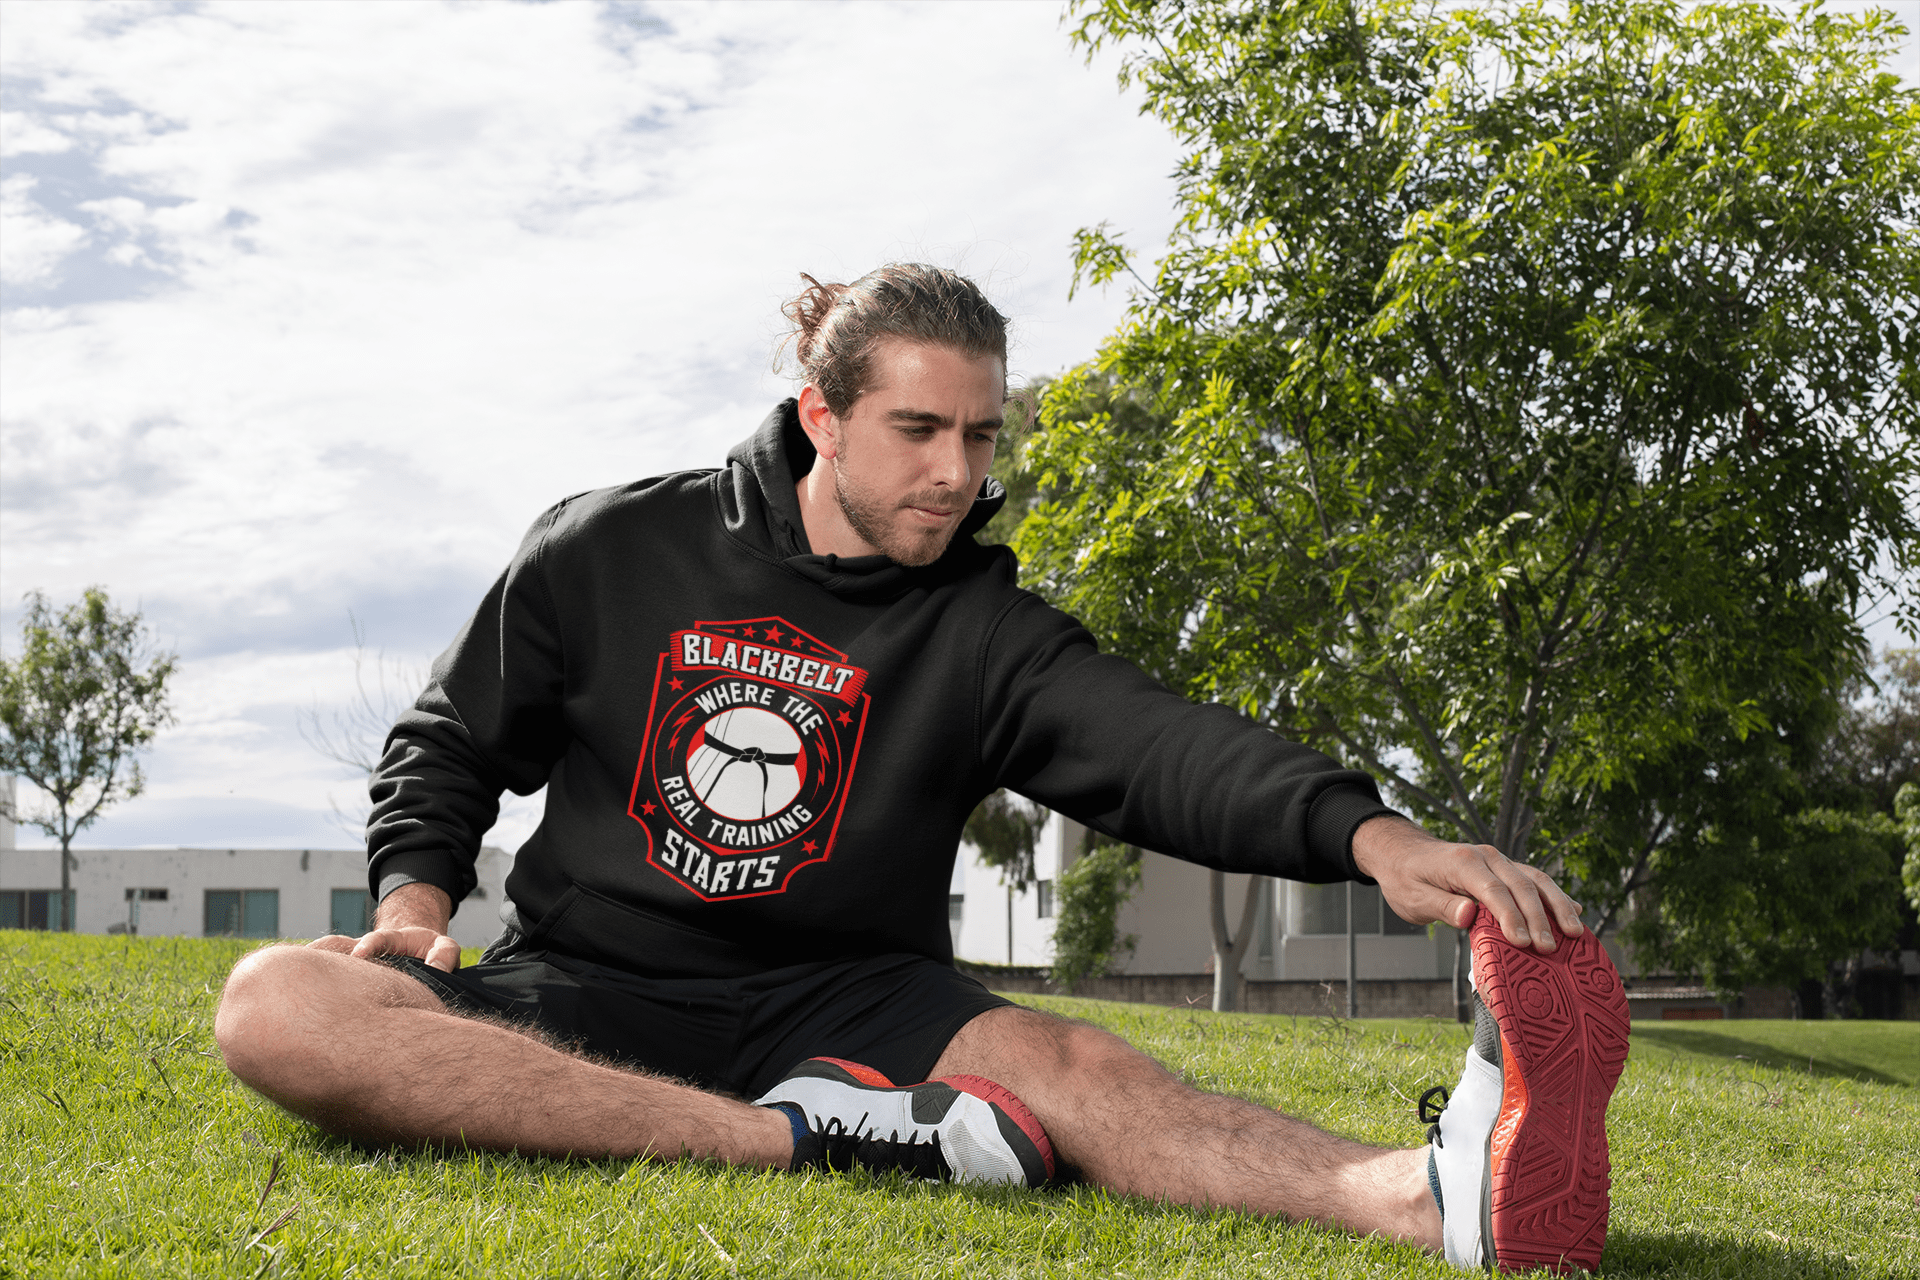 Blackbelt is Where the Real Training Starts - Budo Hoodie T-shirt - TuWillows